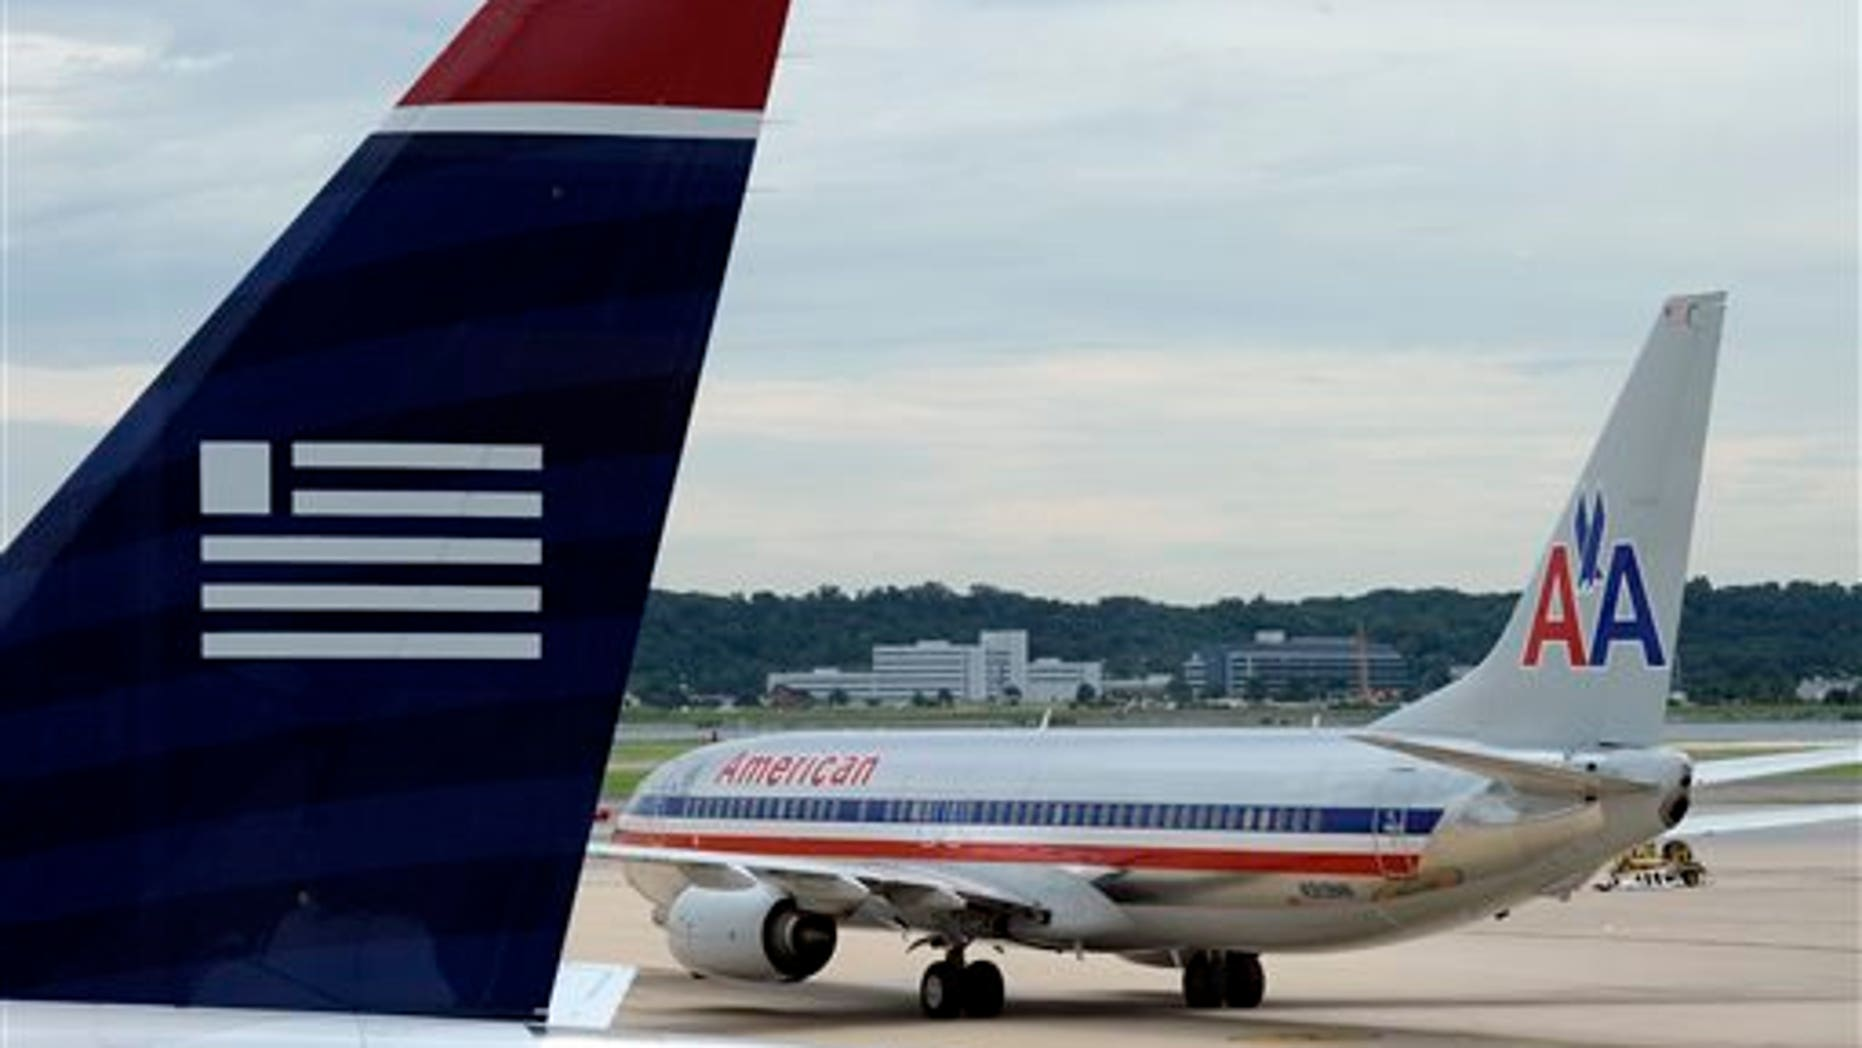 FILE - In this  Tuesday, Aug. 13, 2013, file photo, an American Airlines plane and a US Airways plane are parked at Ronald Reagan National Airport in Washington. A Federal bankruptcy judge is approving the settlement in the U.S. government's antitrust lawsuit against American Airlines and US Airways, clearing the airlines to complete their merger early December 2013. (AP Photo/Susan Walsh, File)